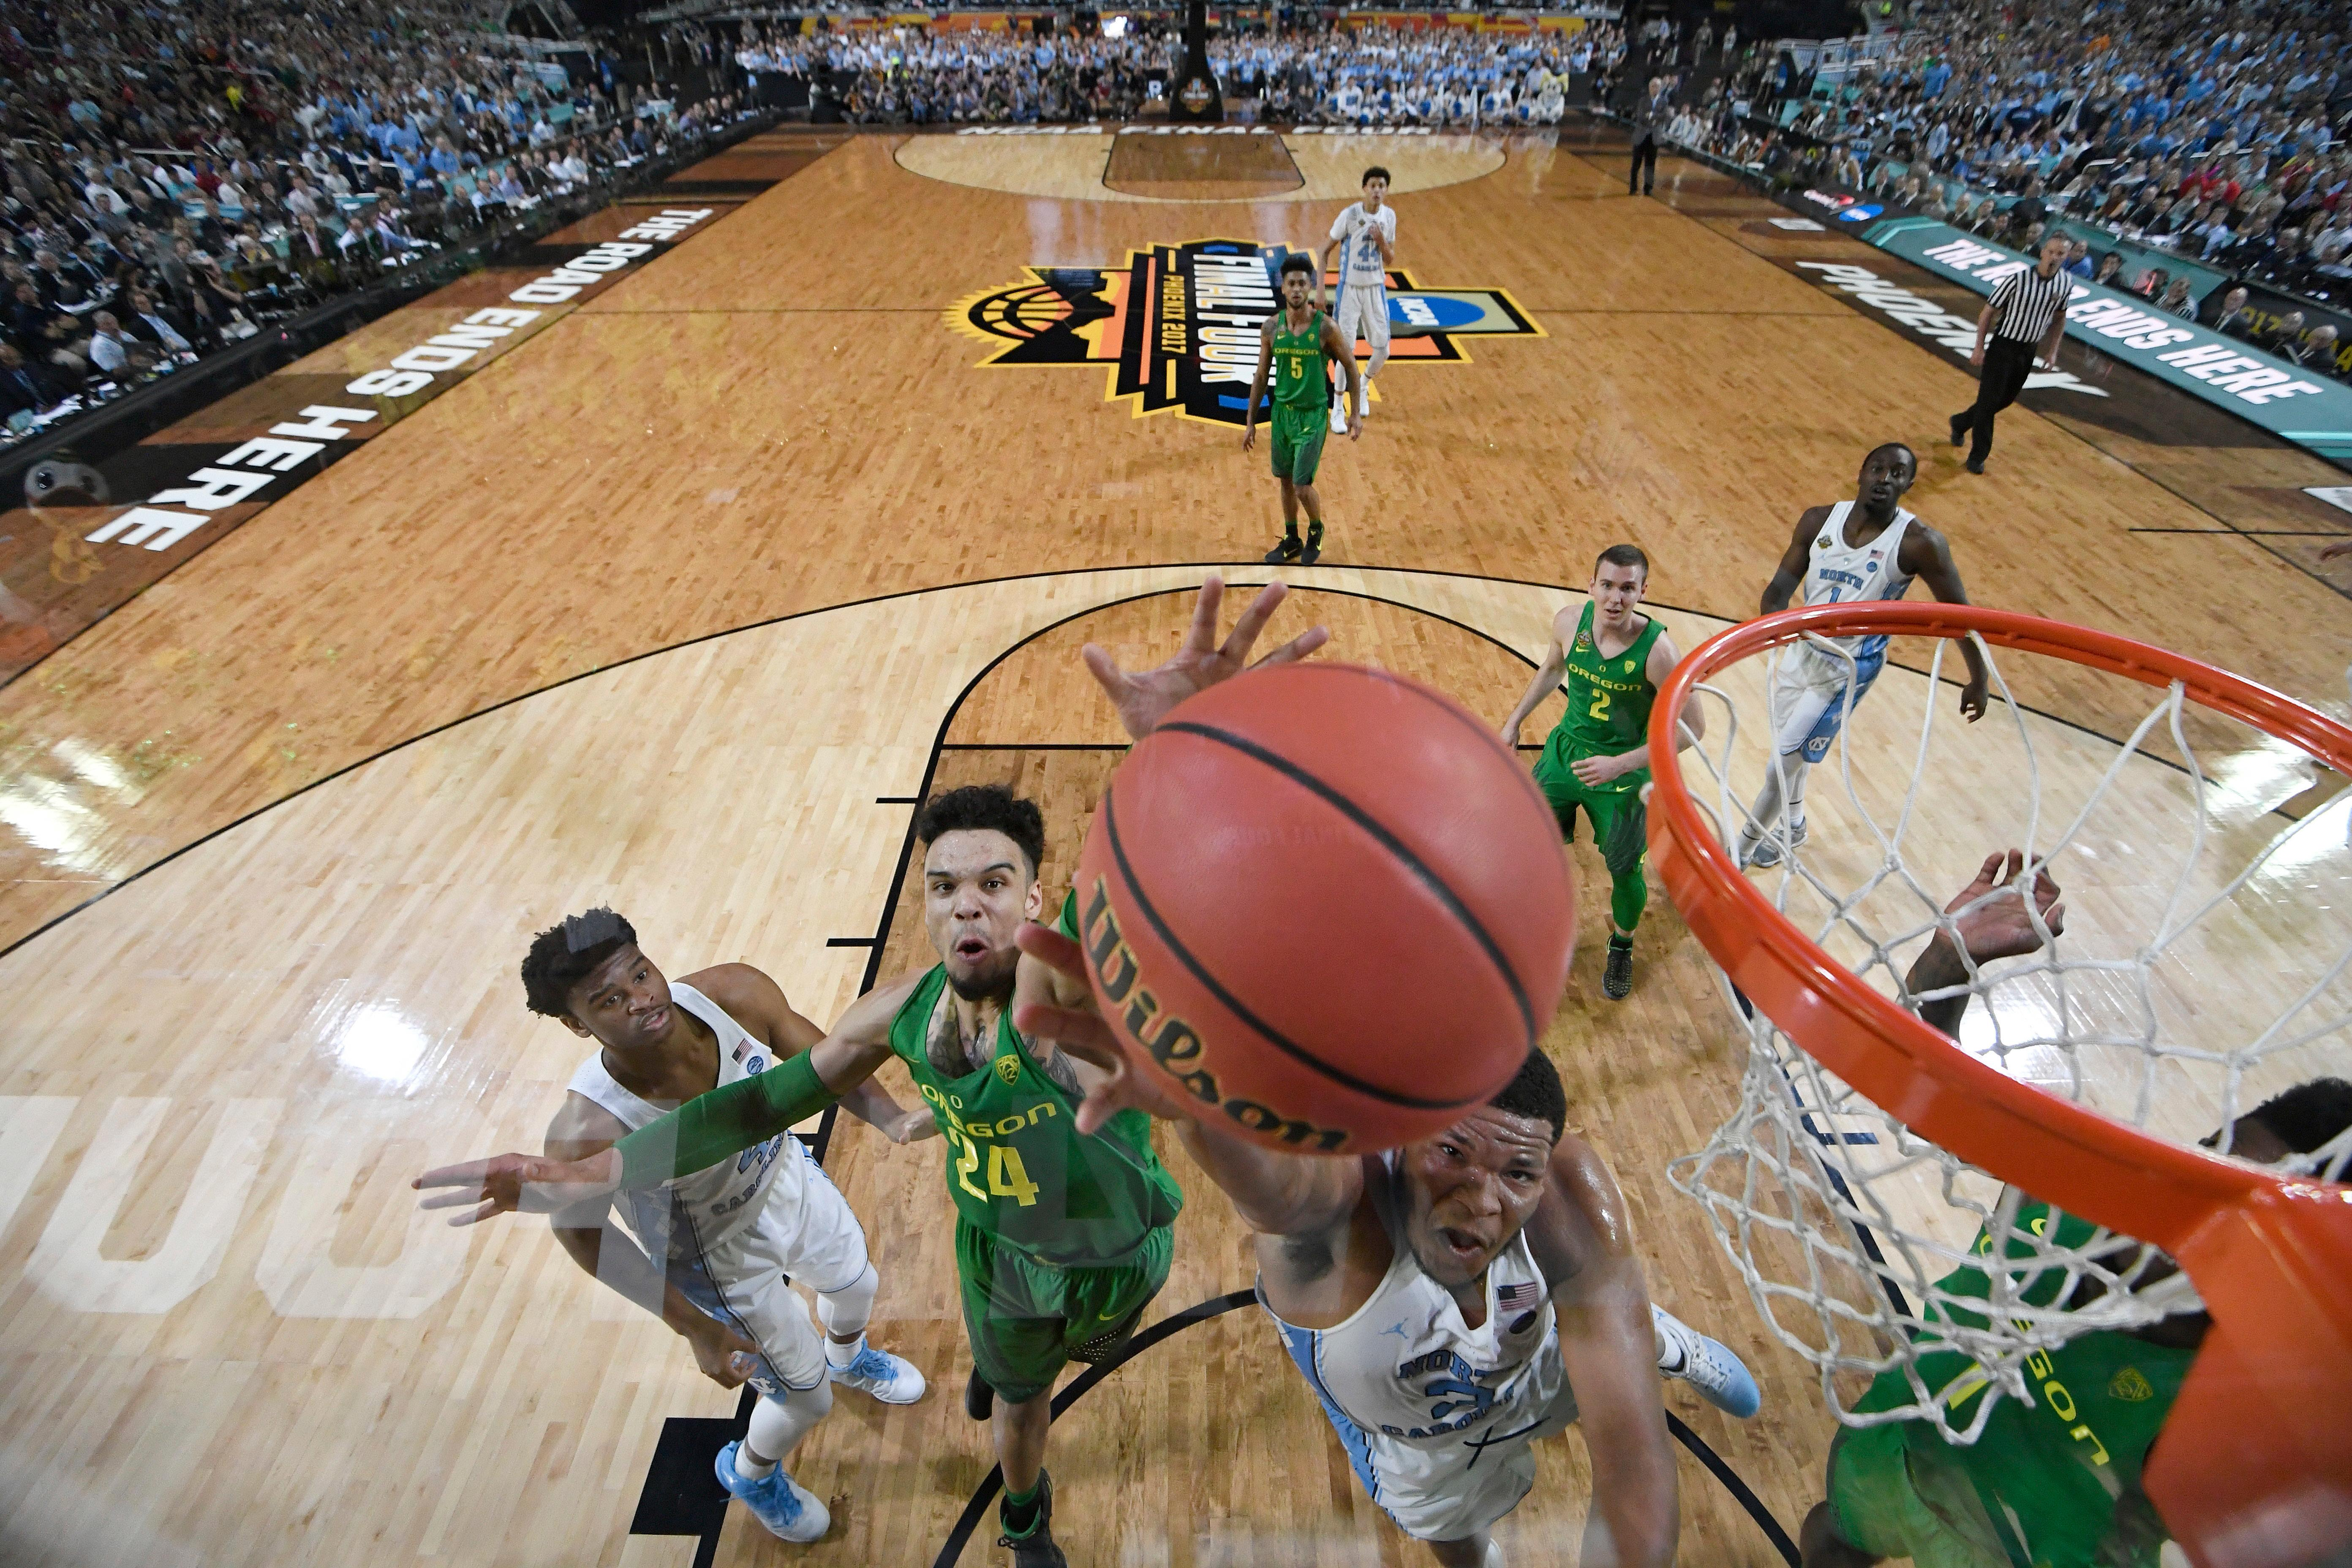 North Carolina's Kennedy Meeks, right, goes up for a shot against Oregon's Dillon Brooks (24) during the second half in the semifinals of the Final Four NCAA college basketball tournament, Saturday, April 1, 2017, in Glendale, Ariz. (AP Photo/Chris Steppig, Pool)